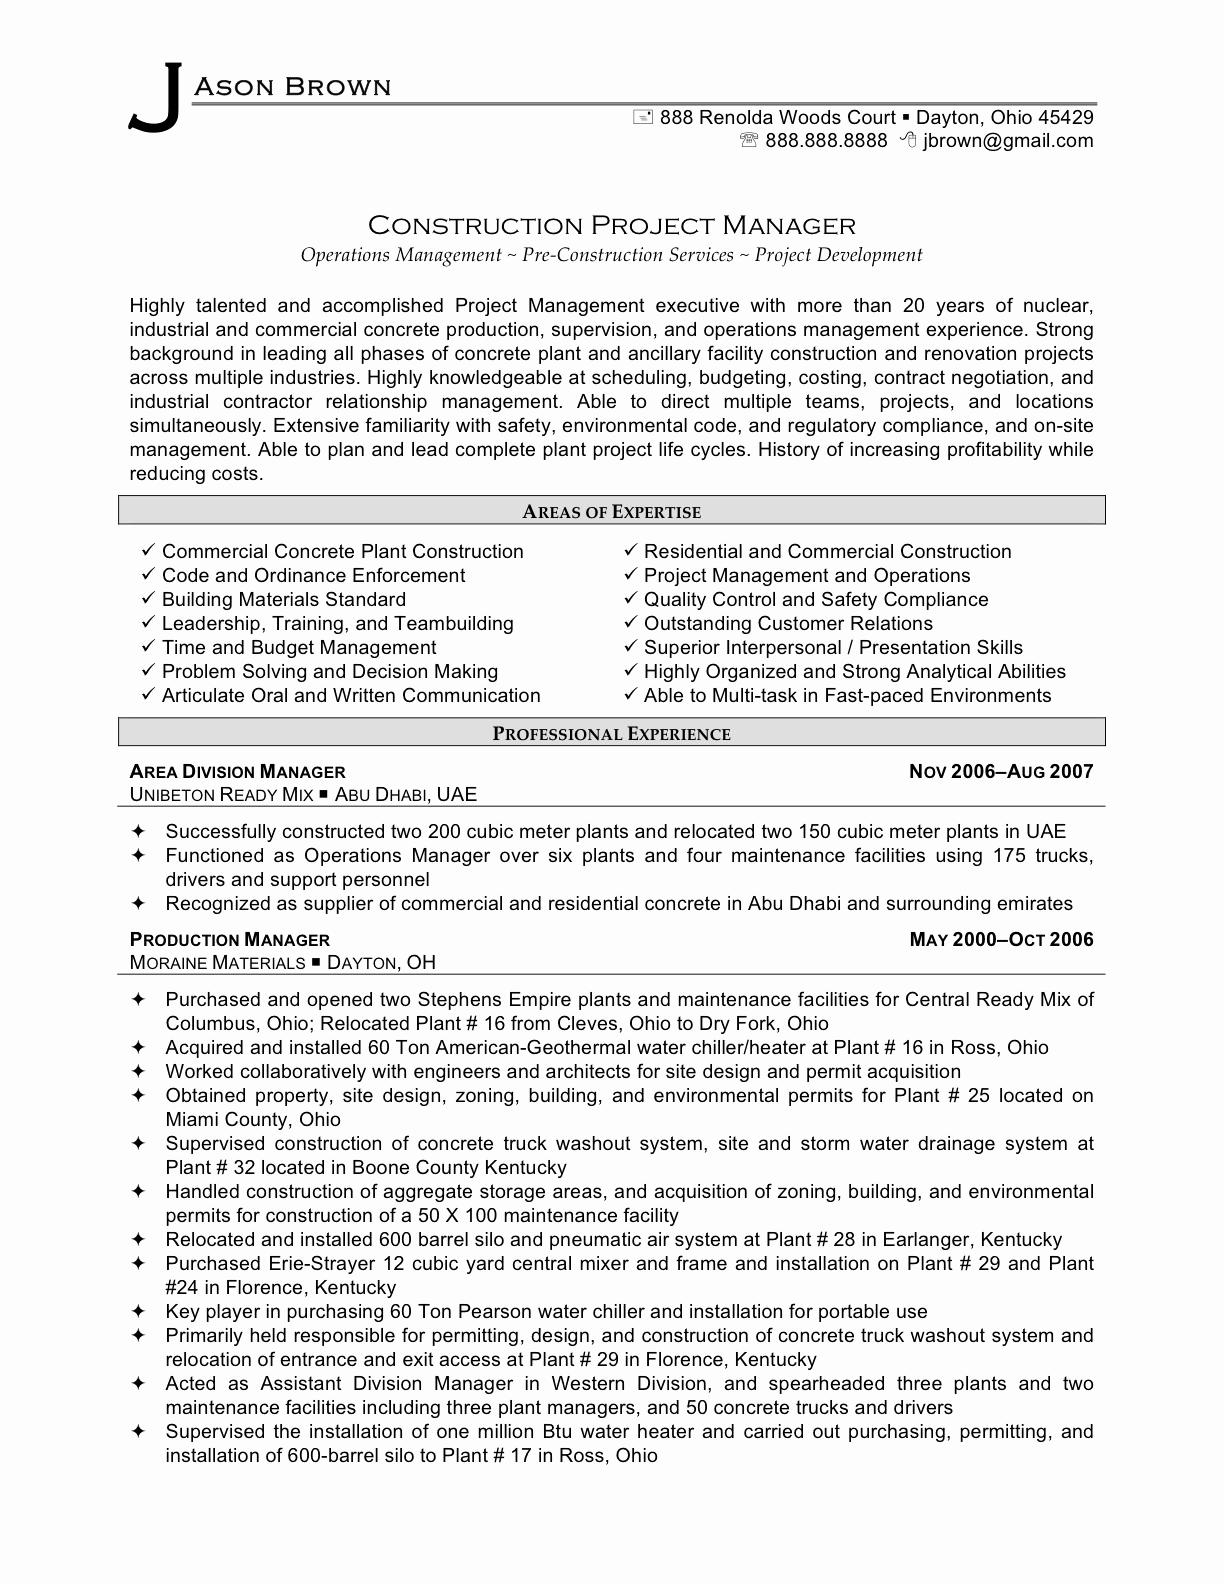 Stage Manager Resume Template - Project Coordinator Resume Samples Lovely Oil and Gas Resume